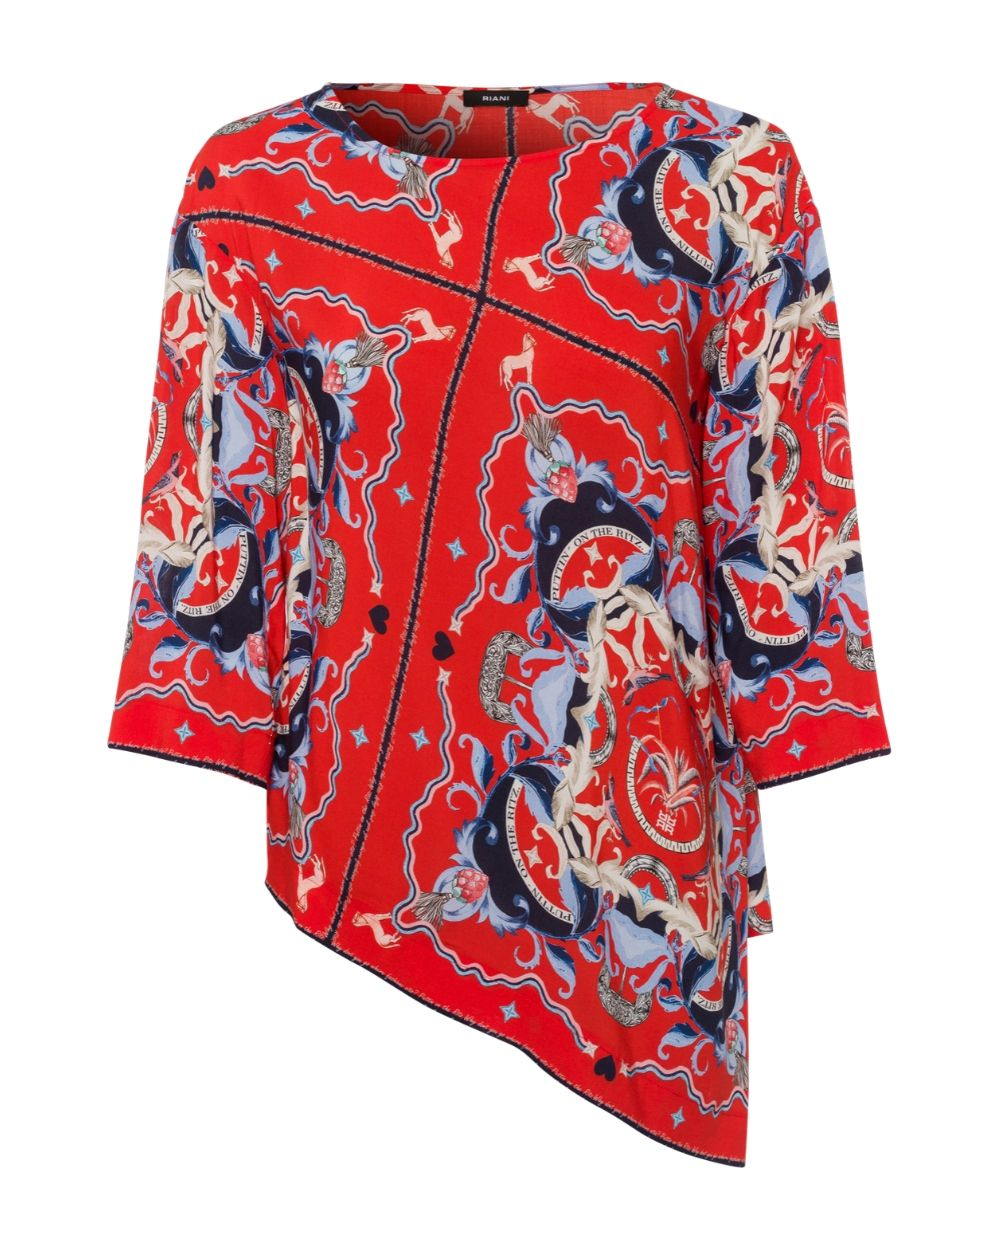 Riani Ritz Red Blouse - Snooty Frox